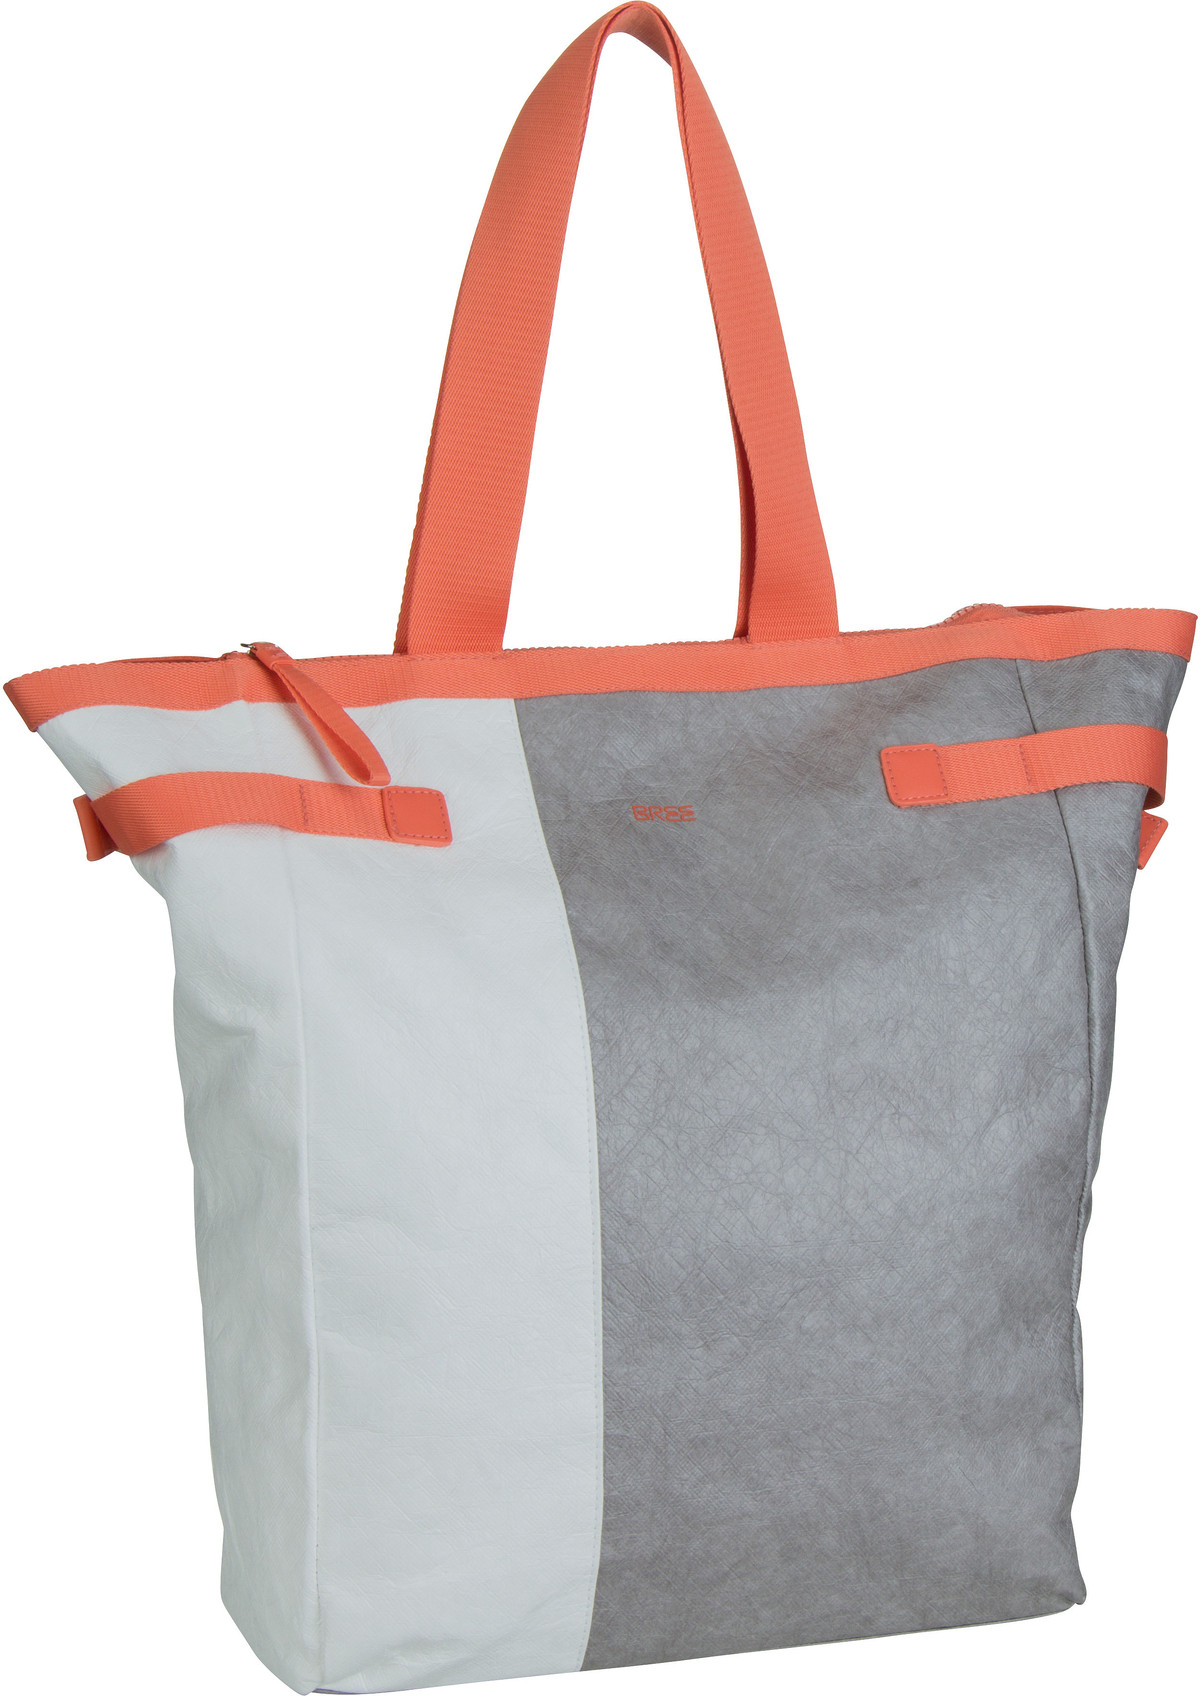 Handtasche Vary 6 Grey/White/Sunset (13 Liter)